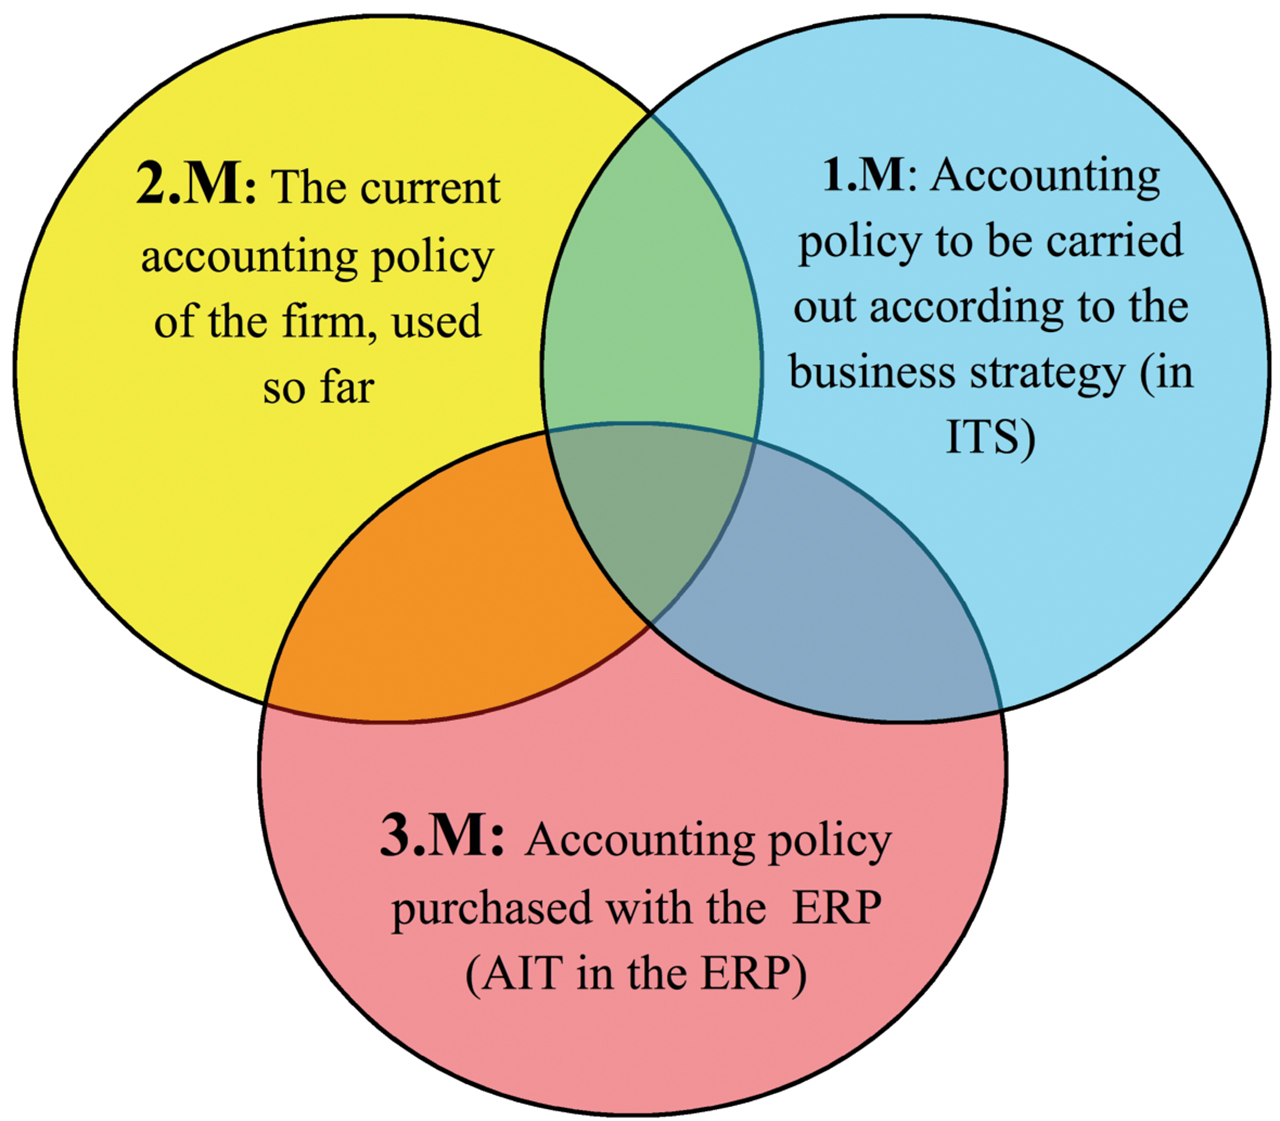 Paper - How to improve your ERP system - A 3.M theory